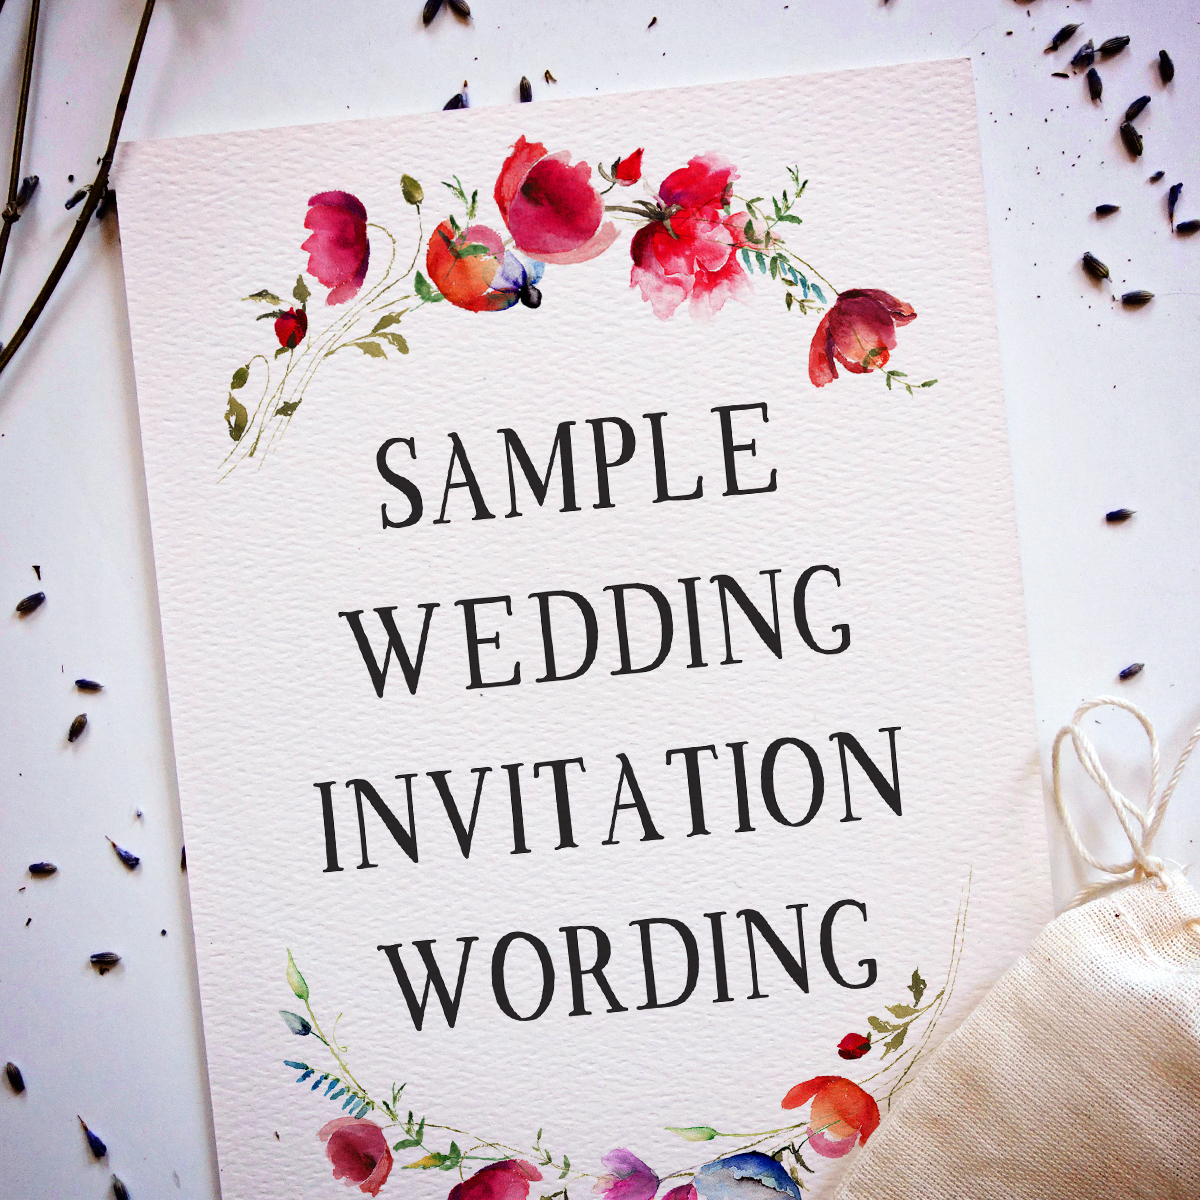 wedding invitation wording samples sample wedding invitation 15 Examples of Wedding Invitation Wording You Can Steal A Practical Wedding We re Your Wedding Planner Wedding Ideas for Brides Bridesmaids Grooms